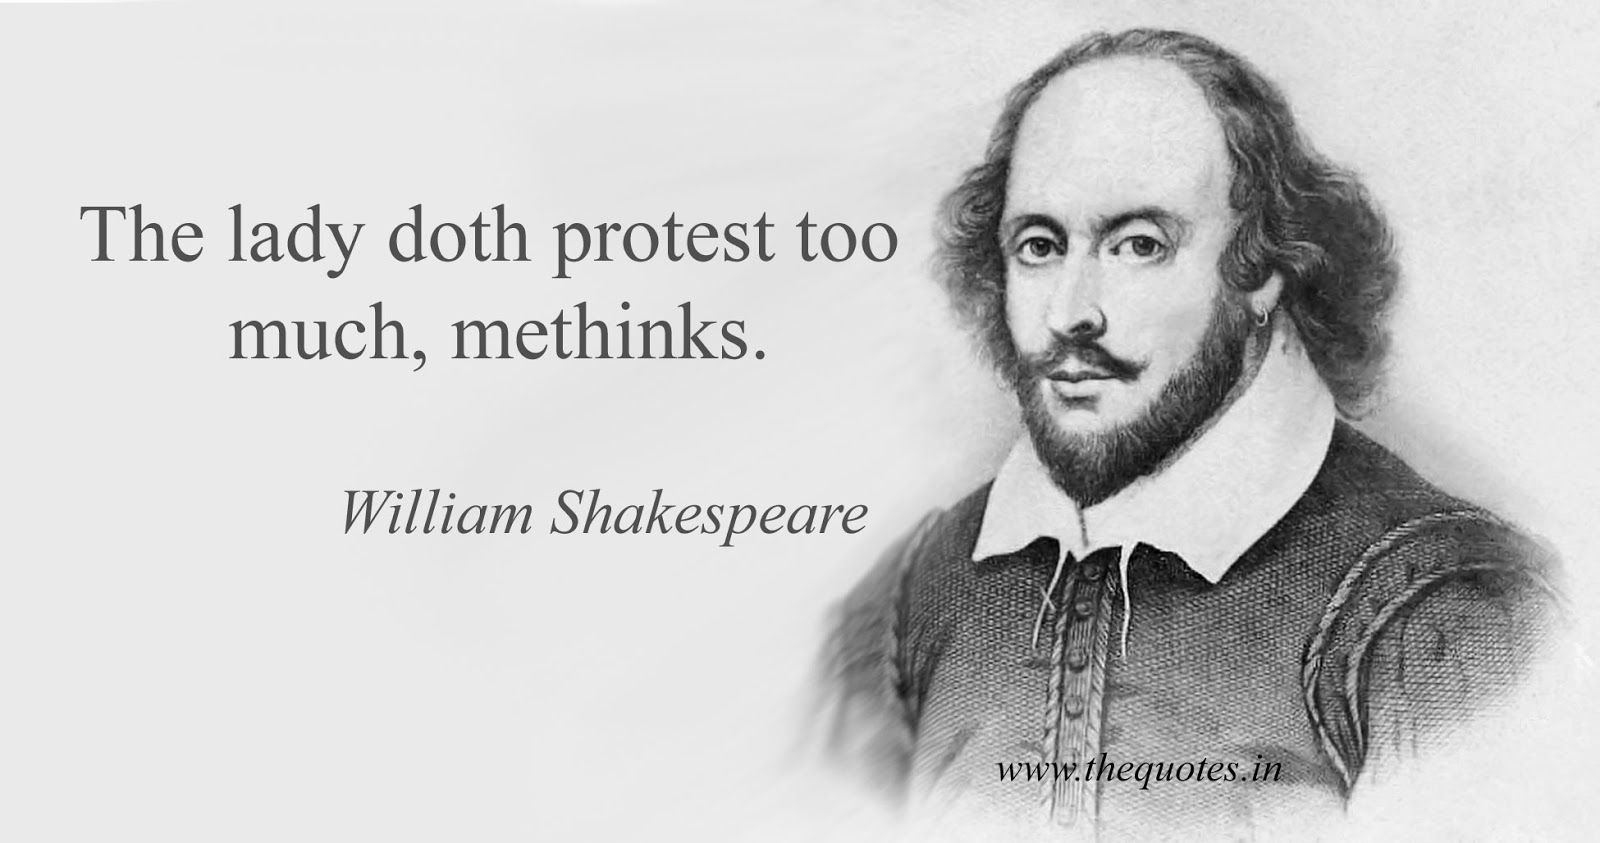 Image Result For Dost Protest Too Much Meme William Shakespeare Quotes English Love Quotes Famous Quotes